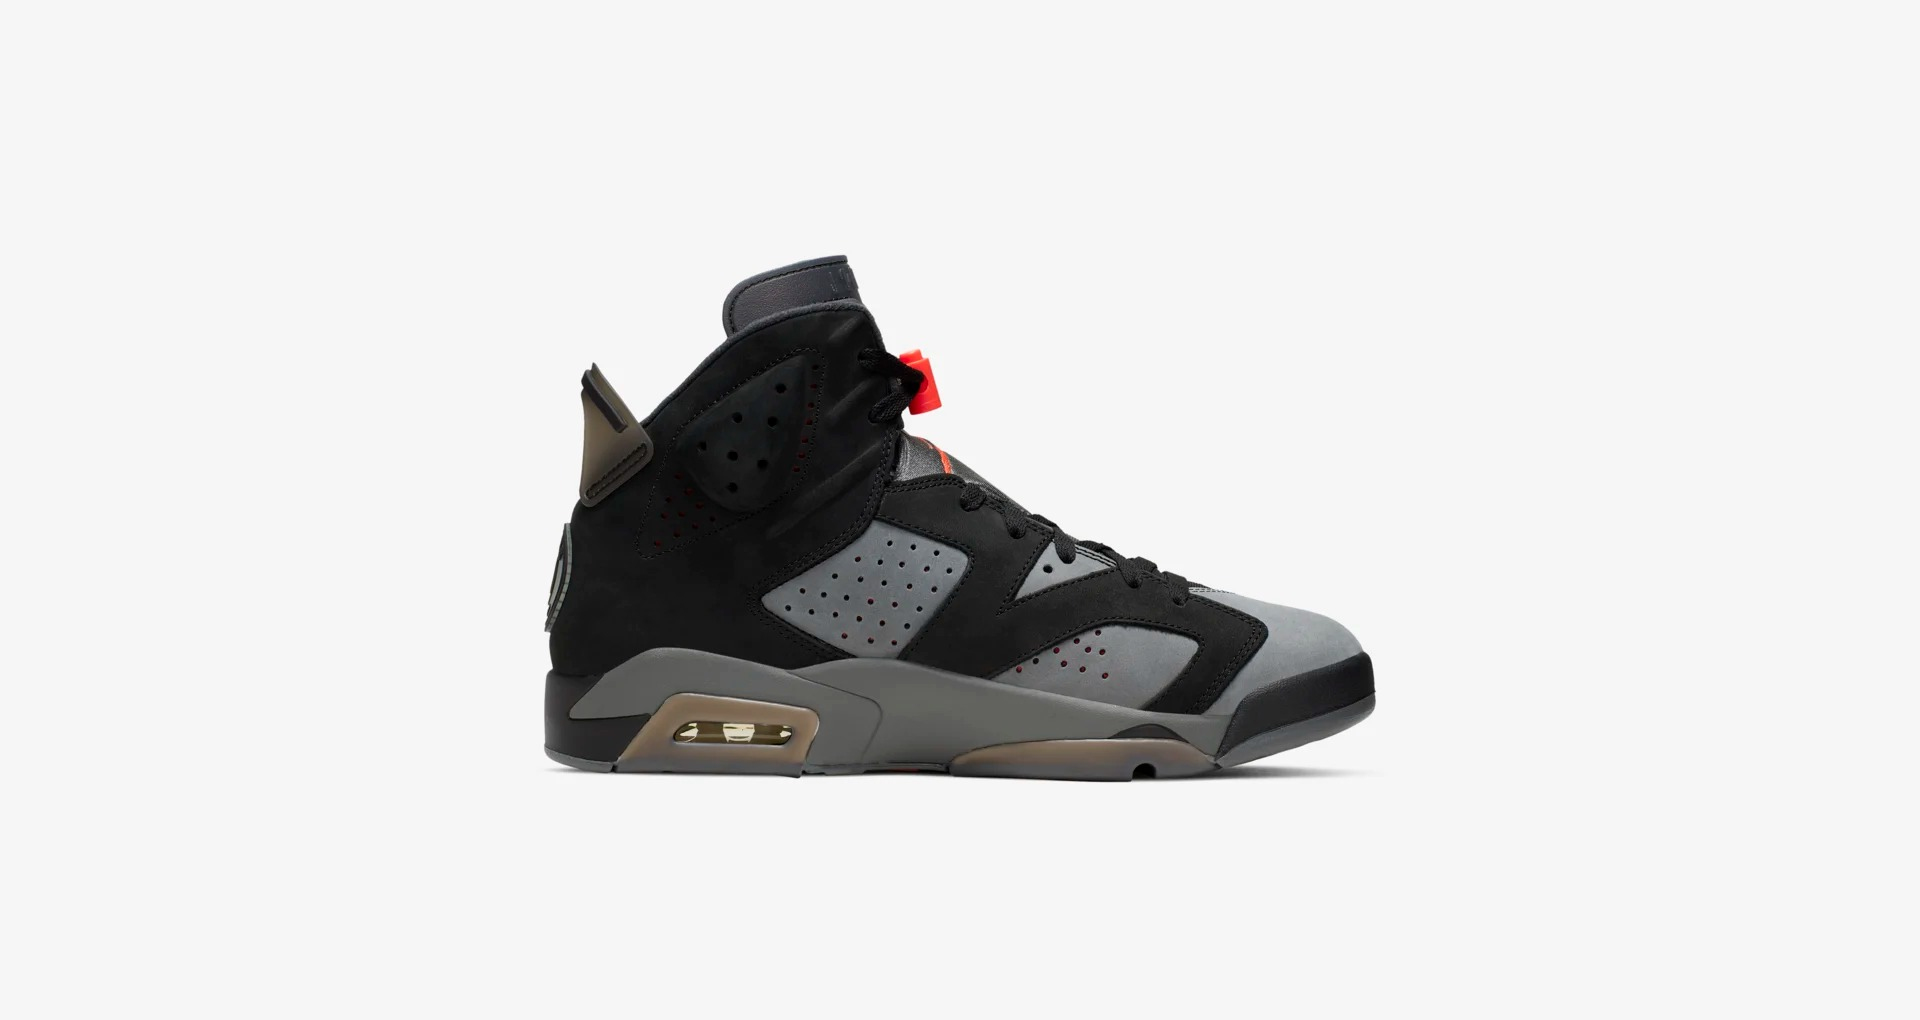 CK1229 001 PSG x Air Jordan 6 Retro 2